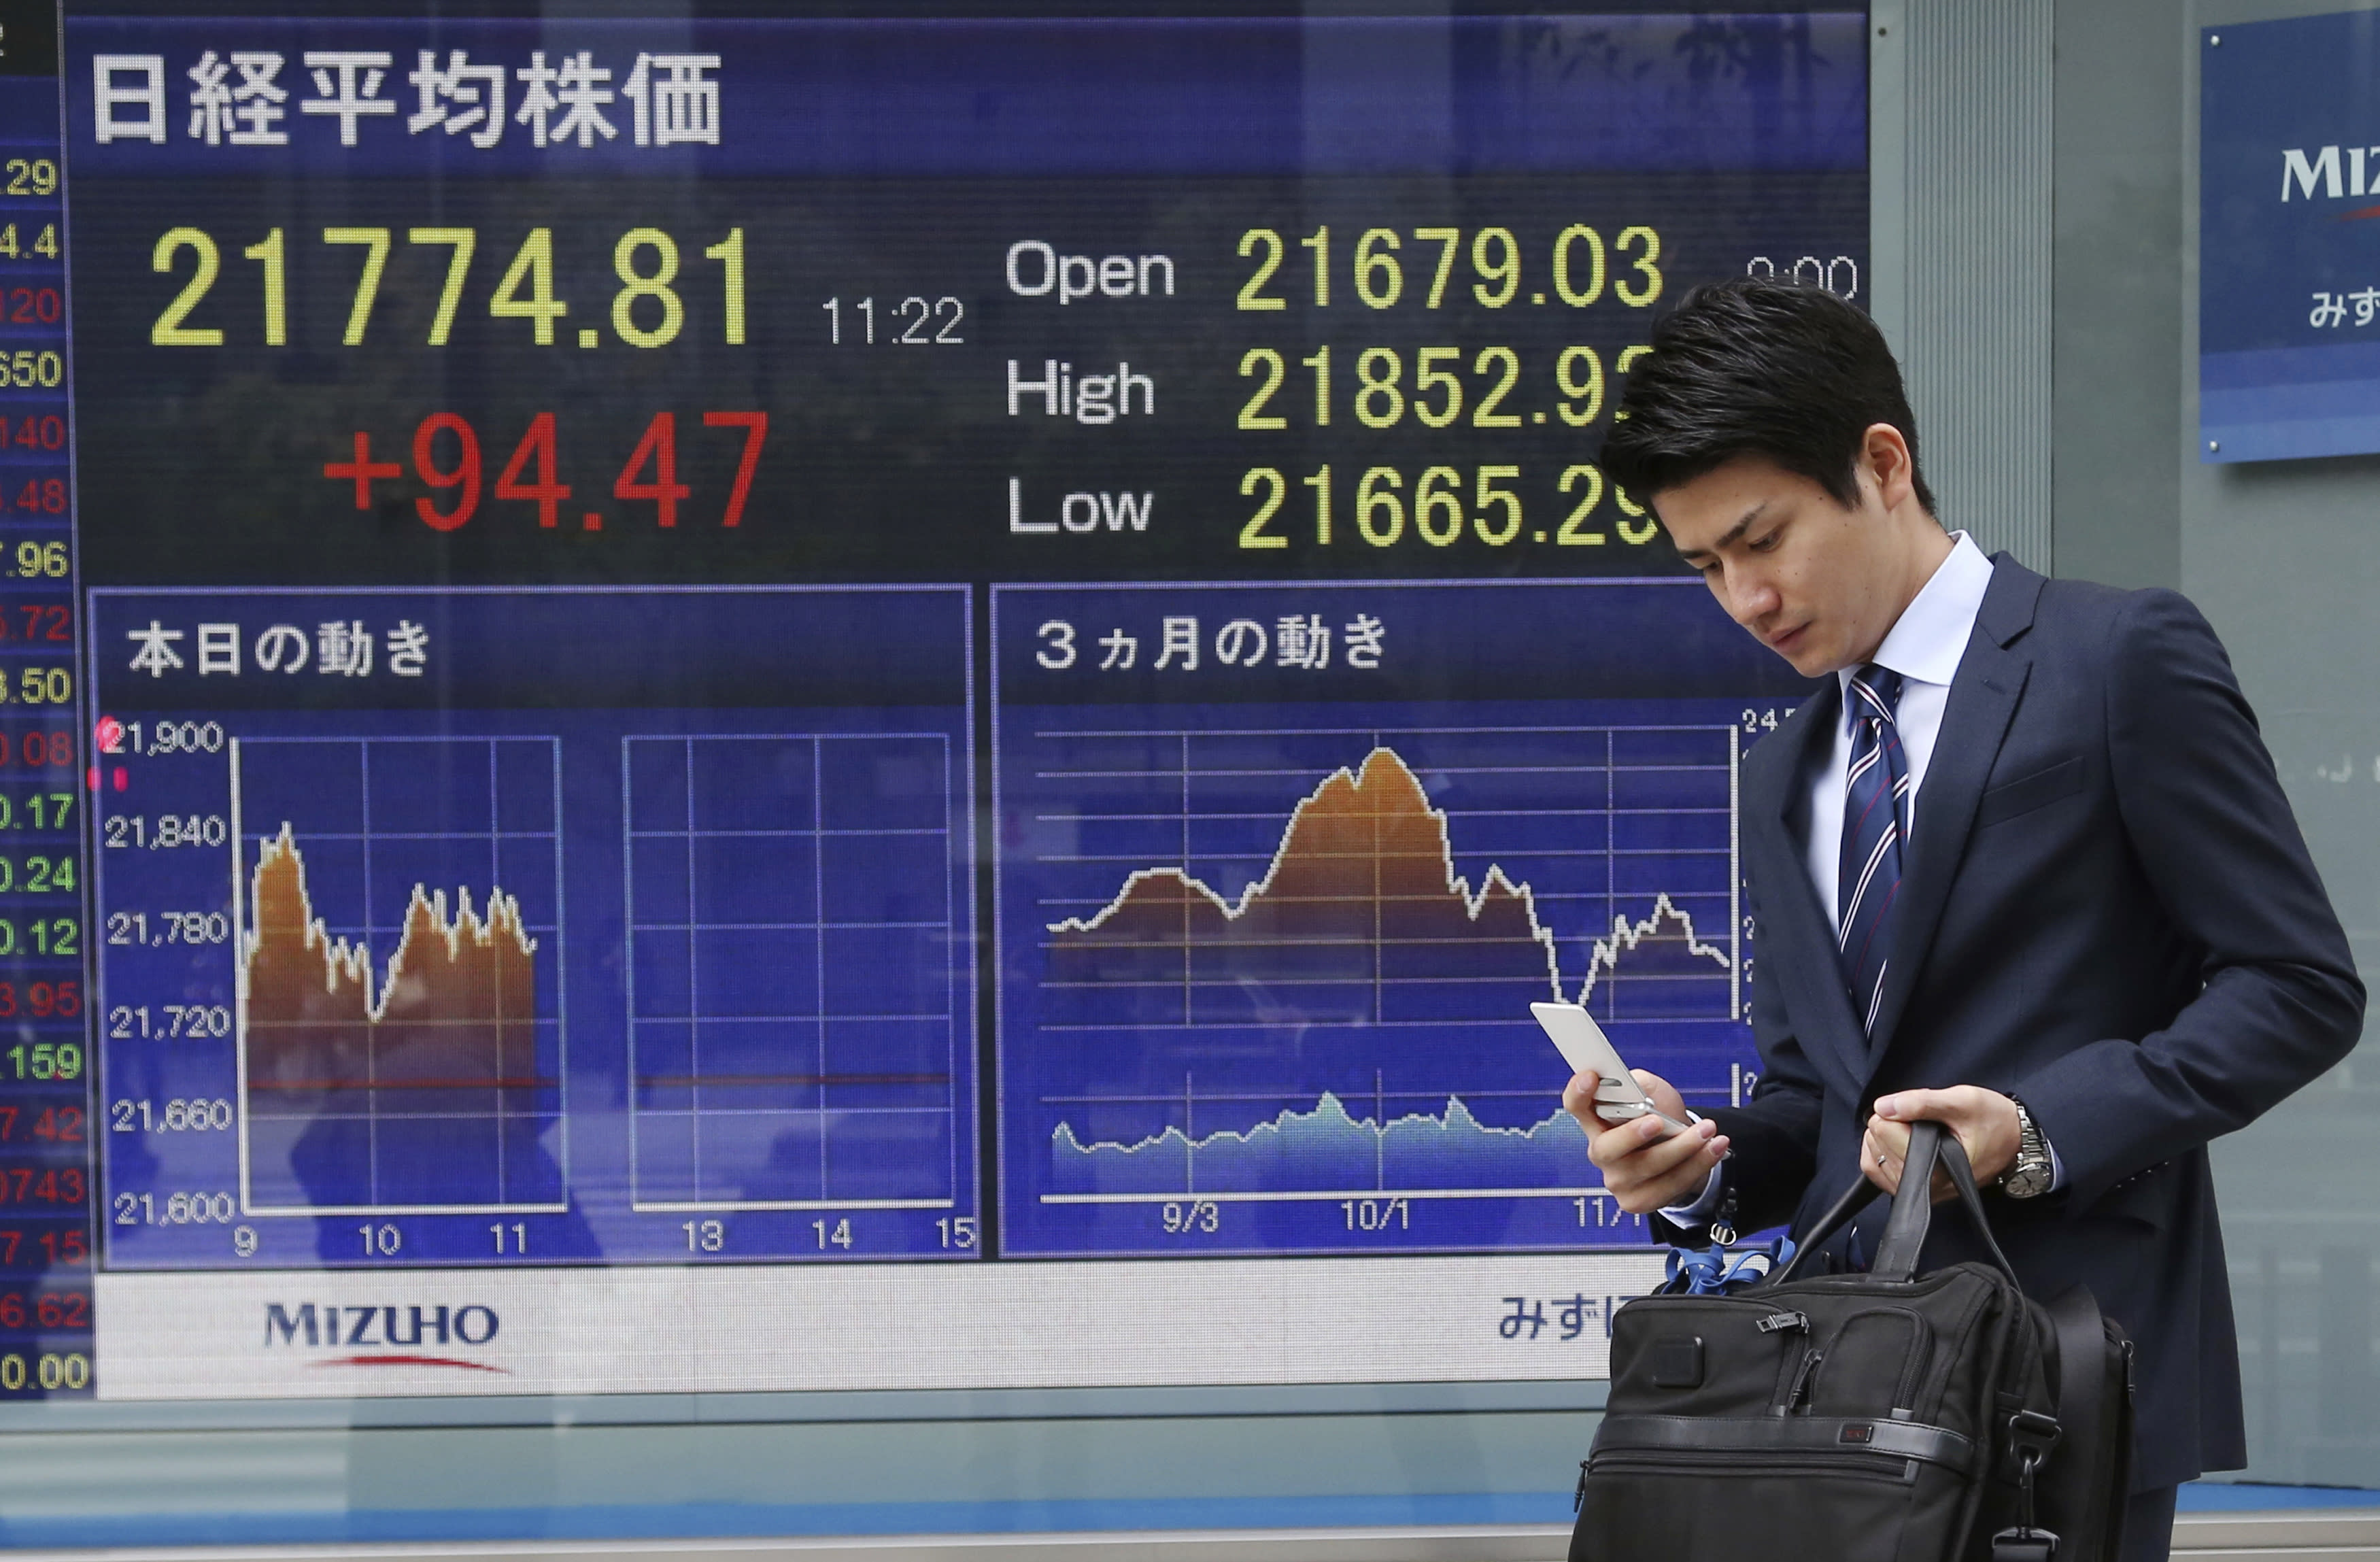 A man walks by an electronic stock board of a securities firm in Tokyo, Monday, Nov. 19, 2018. Asian shares were mostly higher Monday after a buying spree on Wall Street kept up investor optimism into a new week, despite continuing worries about trade tensions. (AP Photo/Koji Sasahara)